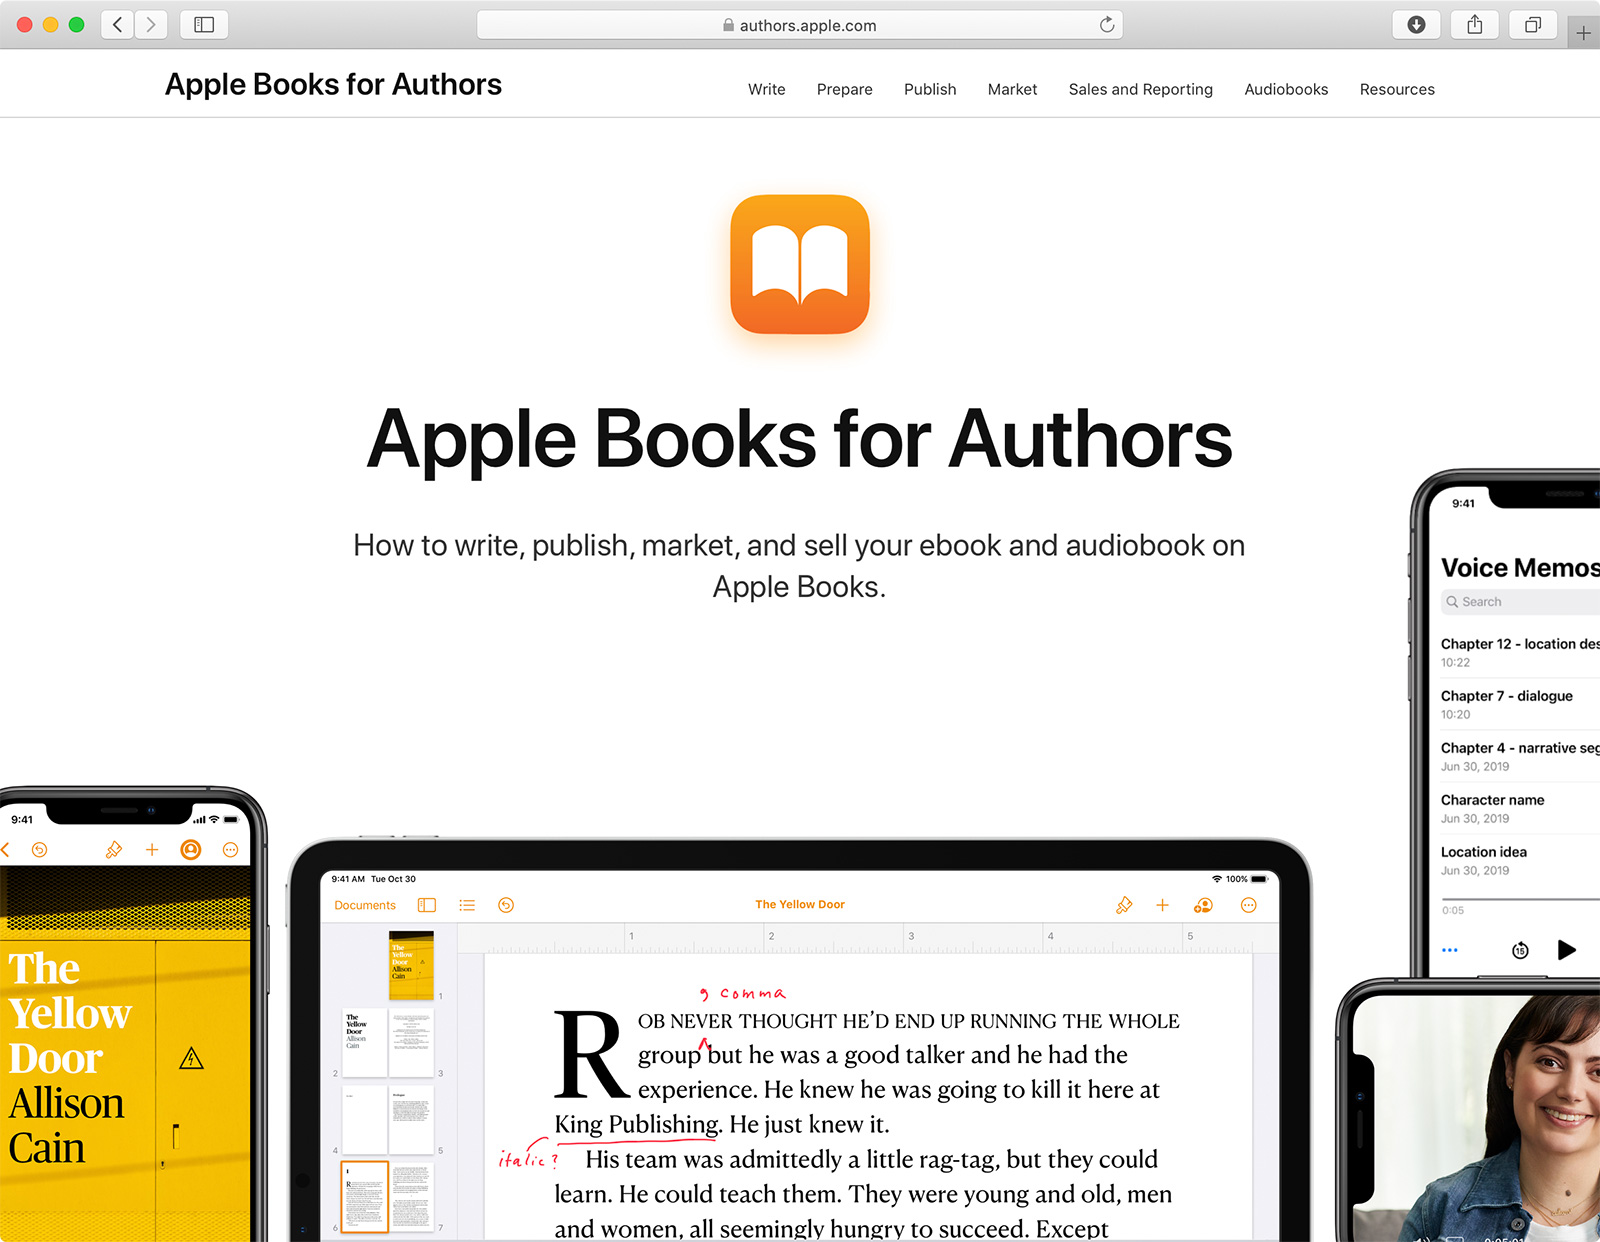 Apple Books for Authors home page.